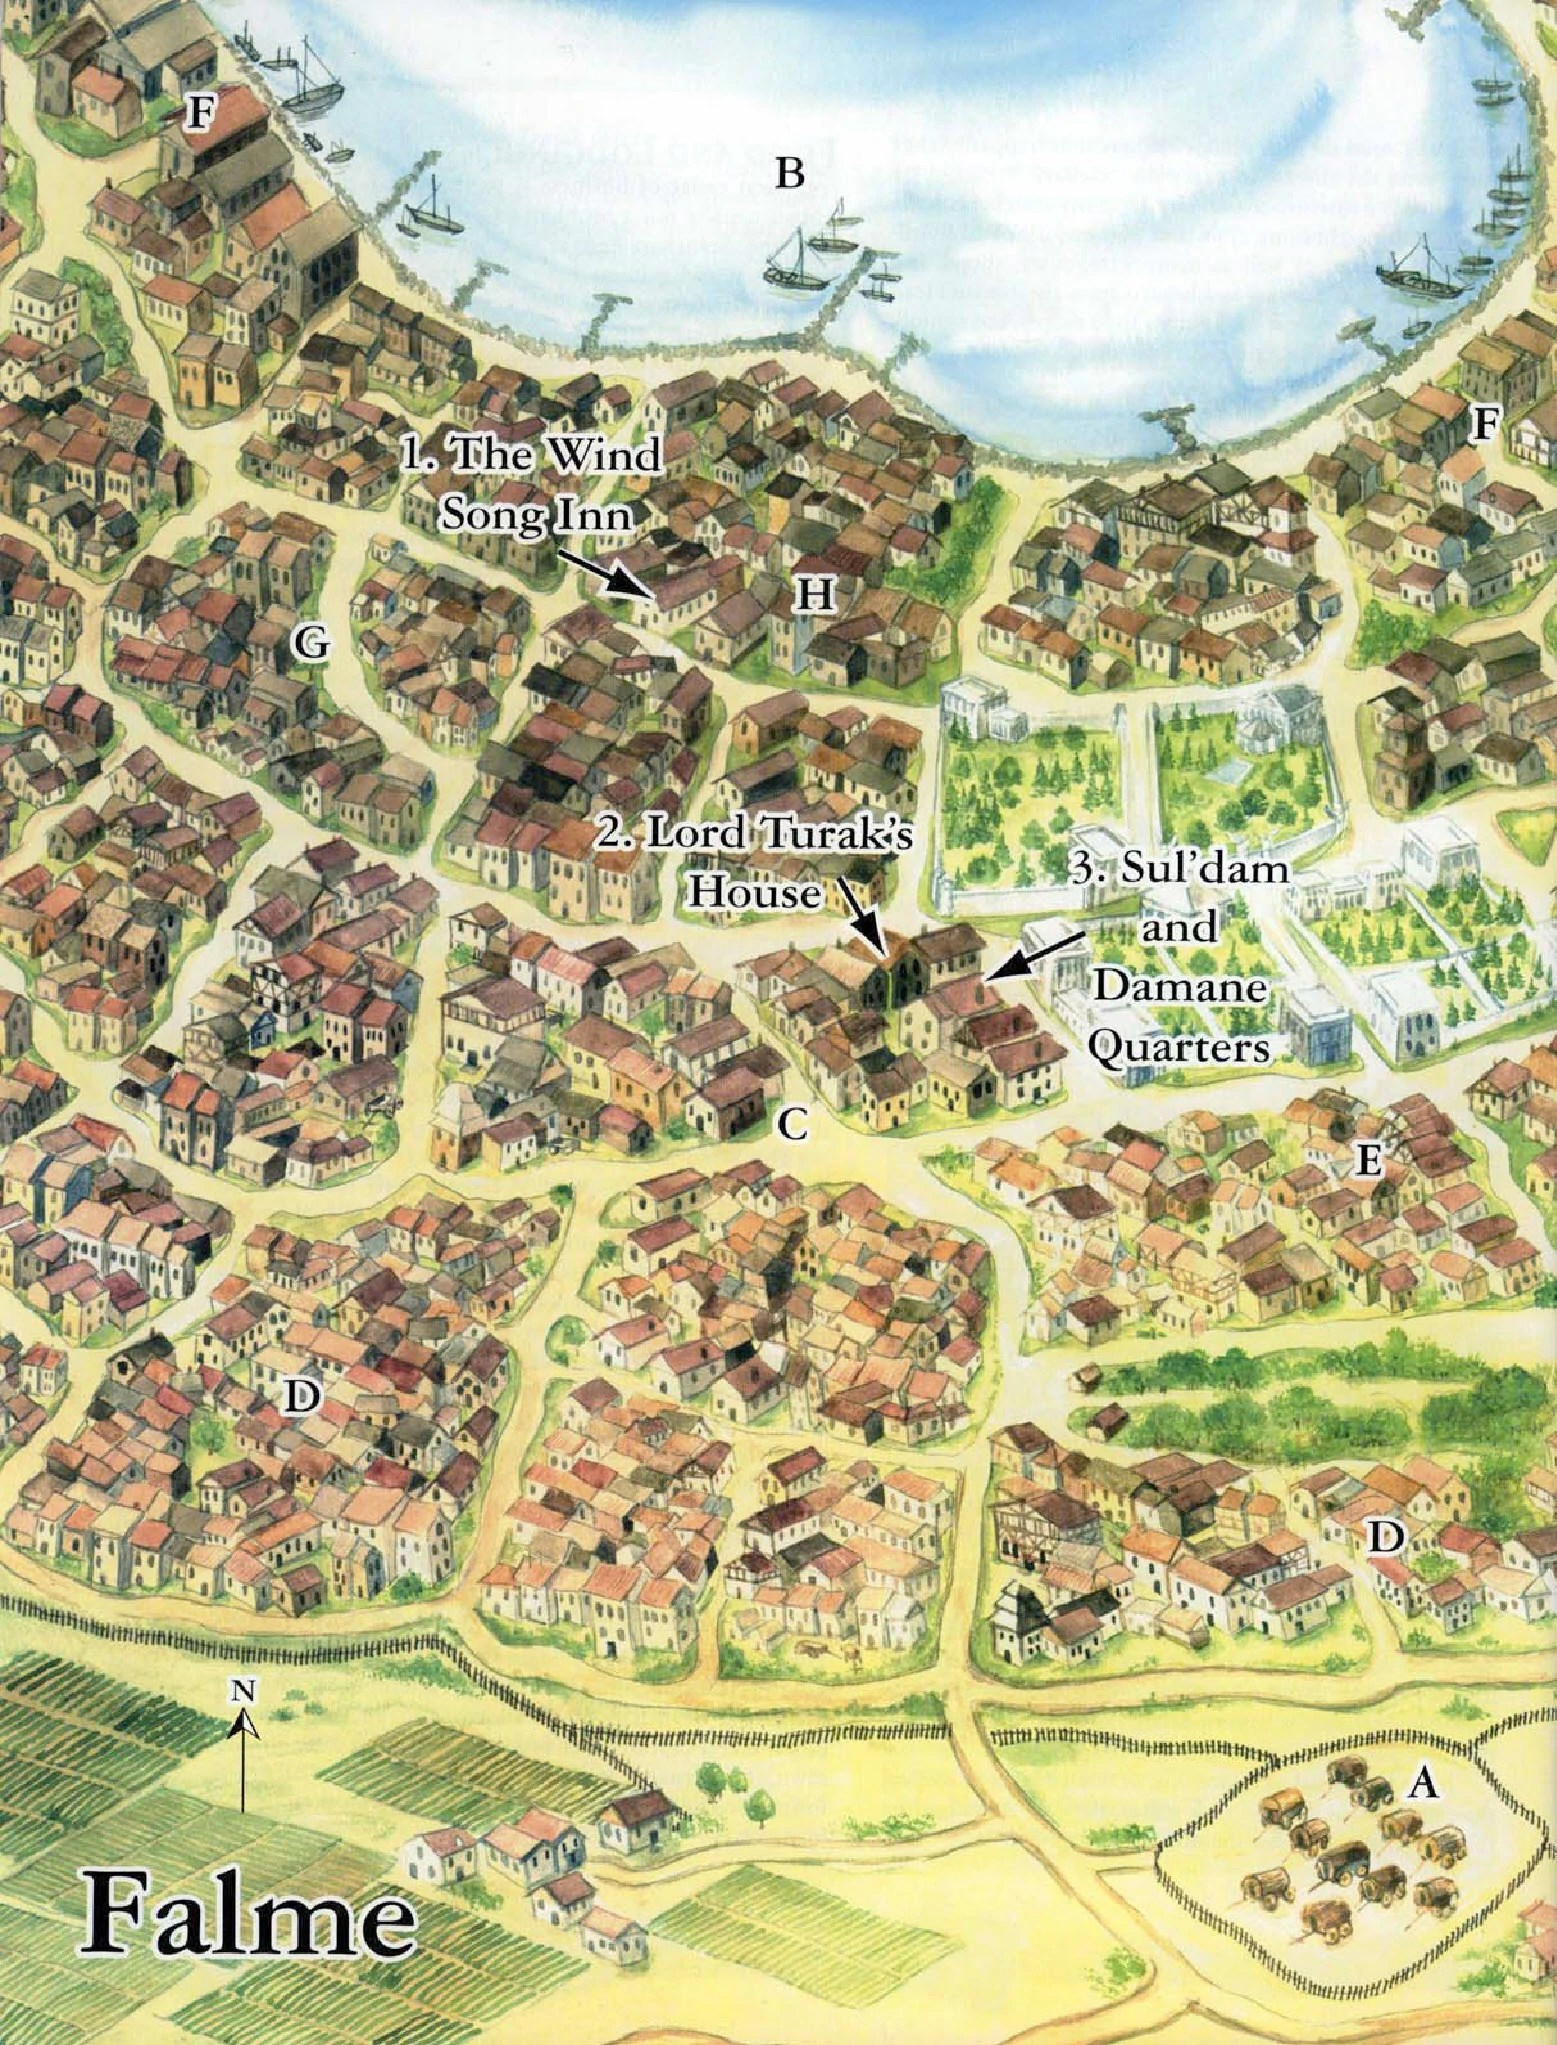 20+ Robert Jordan Map Pictures and Ideas on Weric